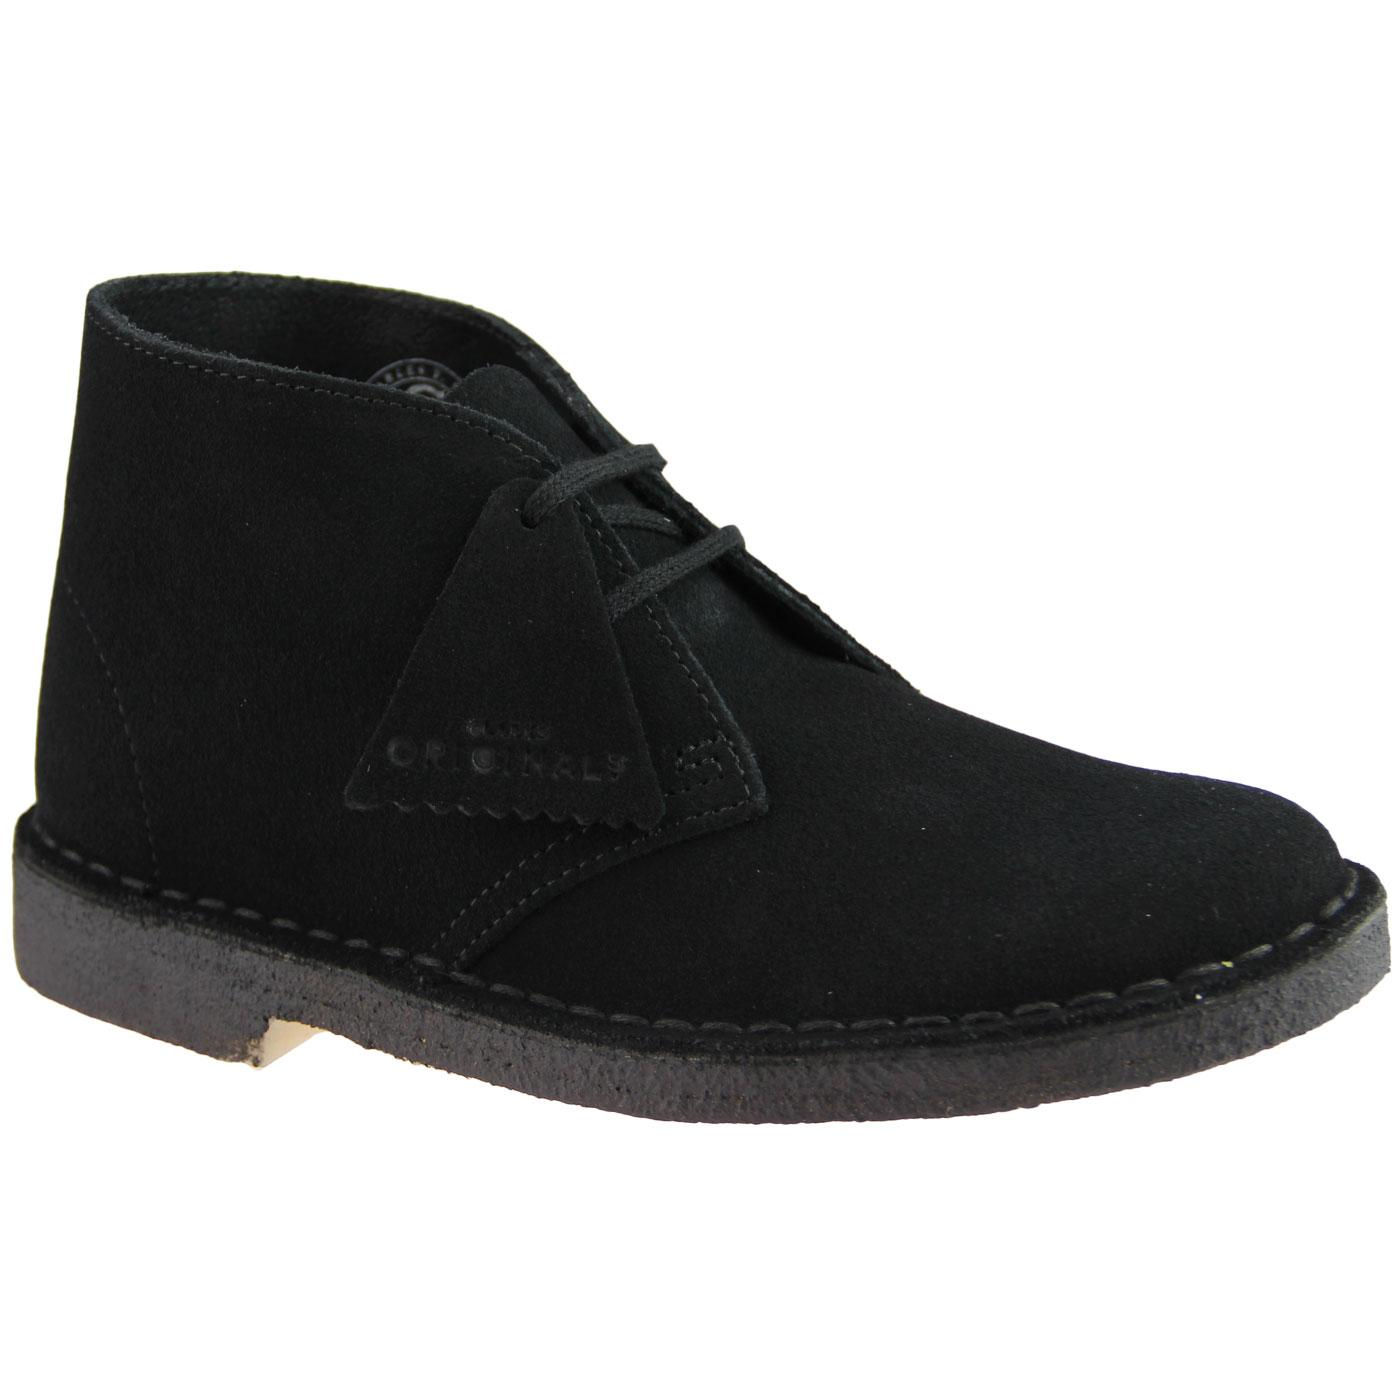 Desert Boots CLARKS ORIGINALS Women's Boots Black